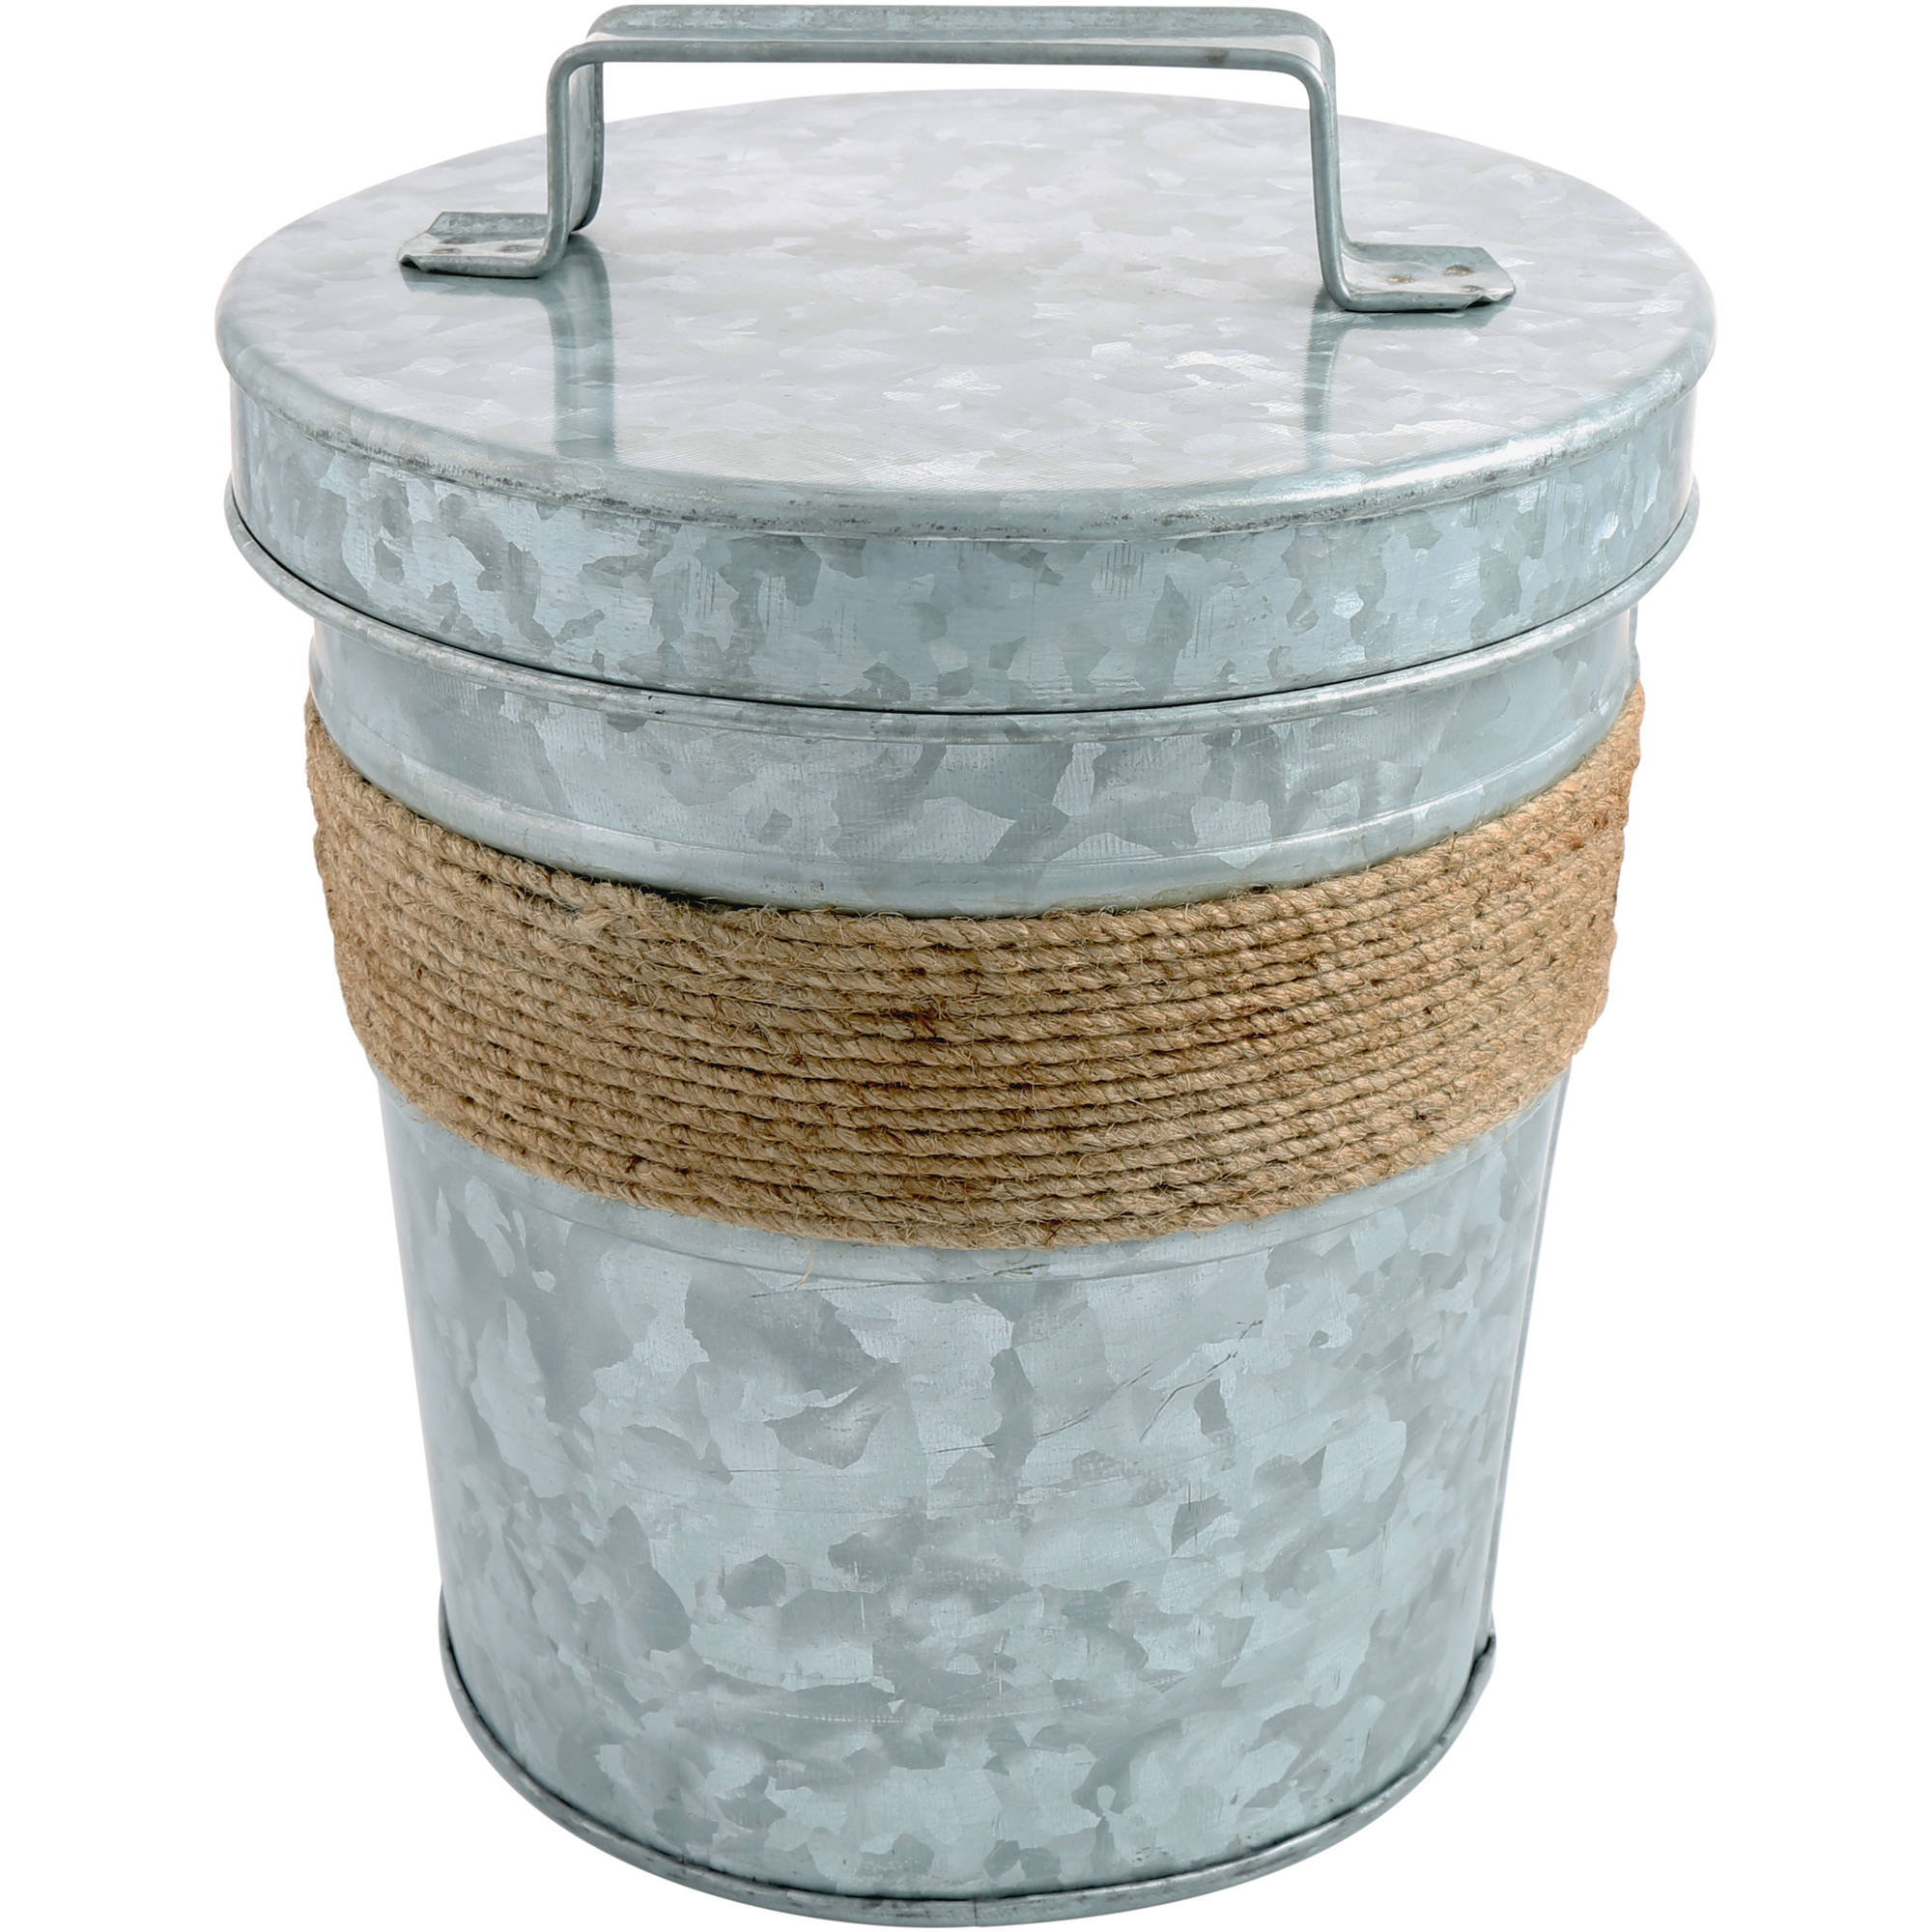 Cambridge Shiloh Galvanized and Rope 3 qt S W Ice Bucket by Cambridge